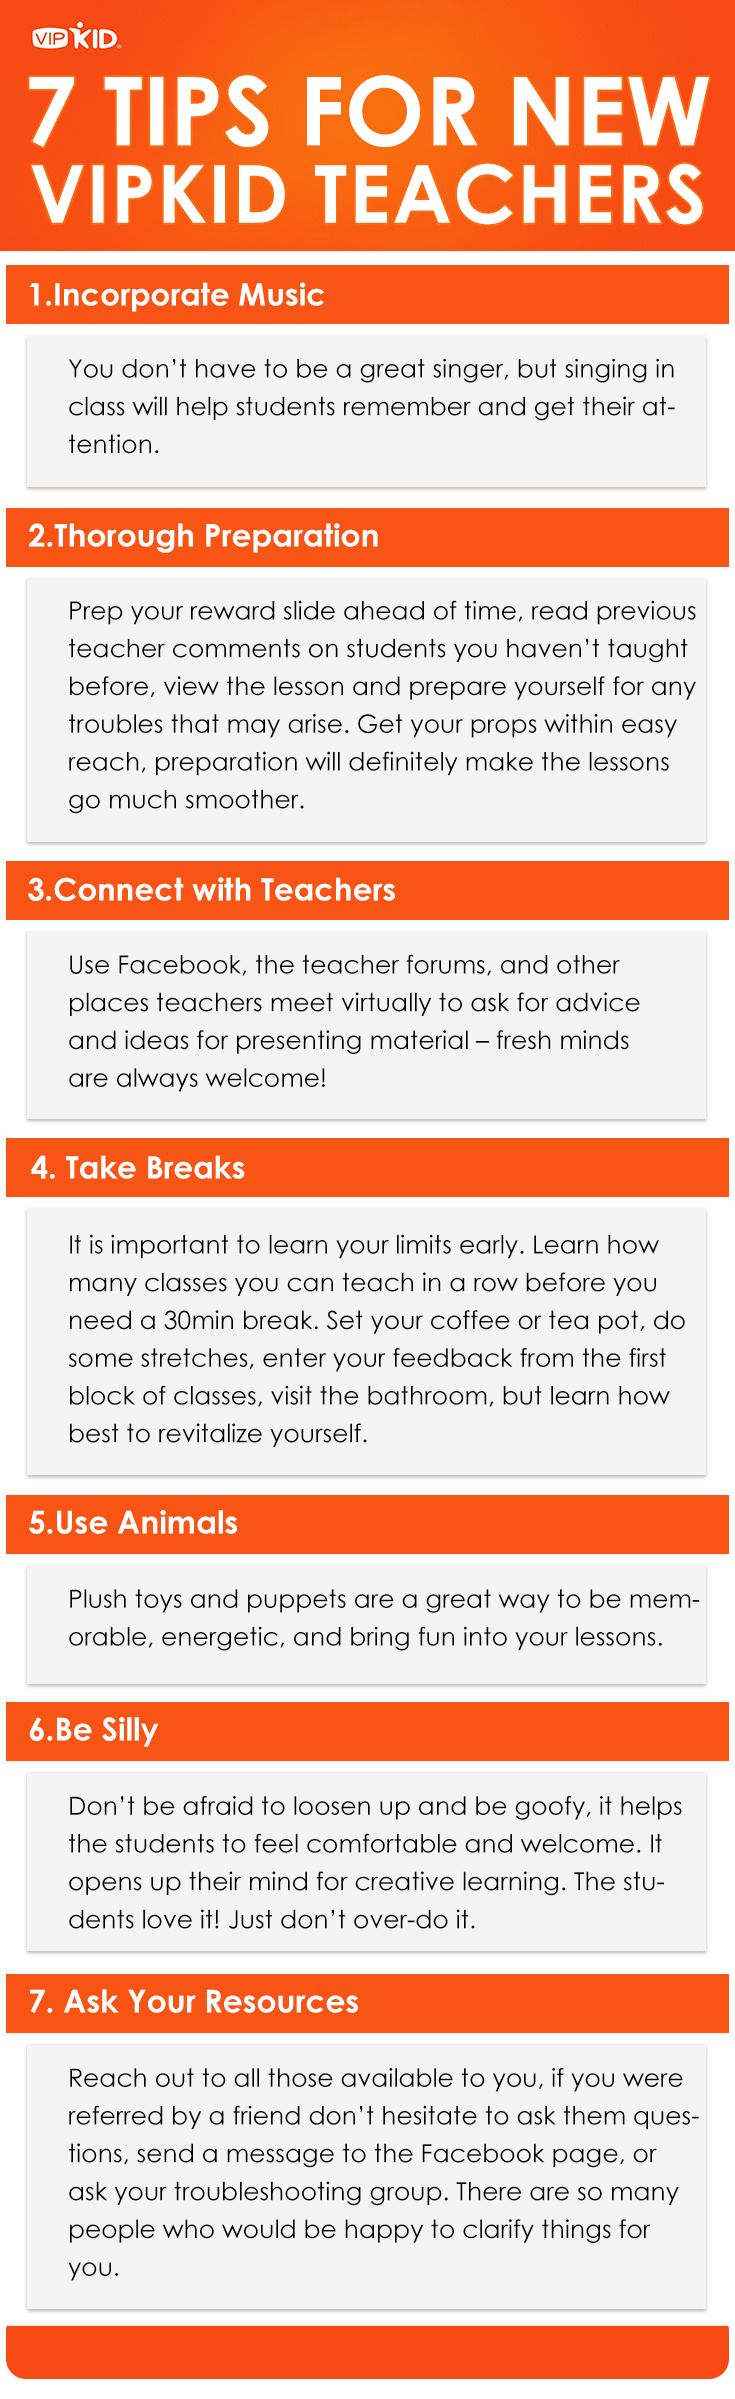 If you are a new VIPKID teacher or hoping to be one - here are some tips to help you ease into your new classroom and more importantly enjoy your job! What advice do you have for new teachers? http://vblog.vipkid.com.cn?p=82